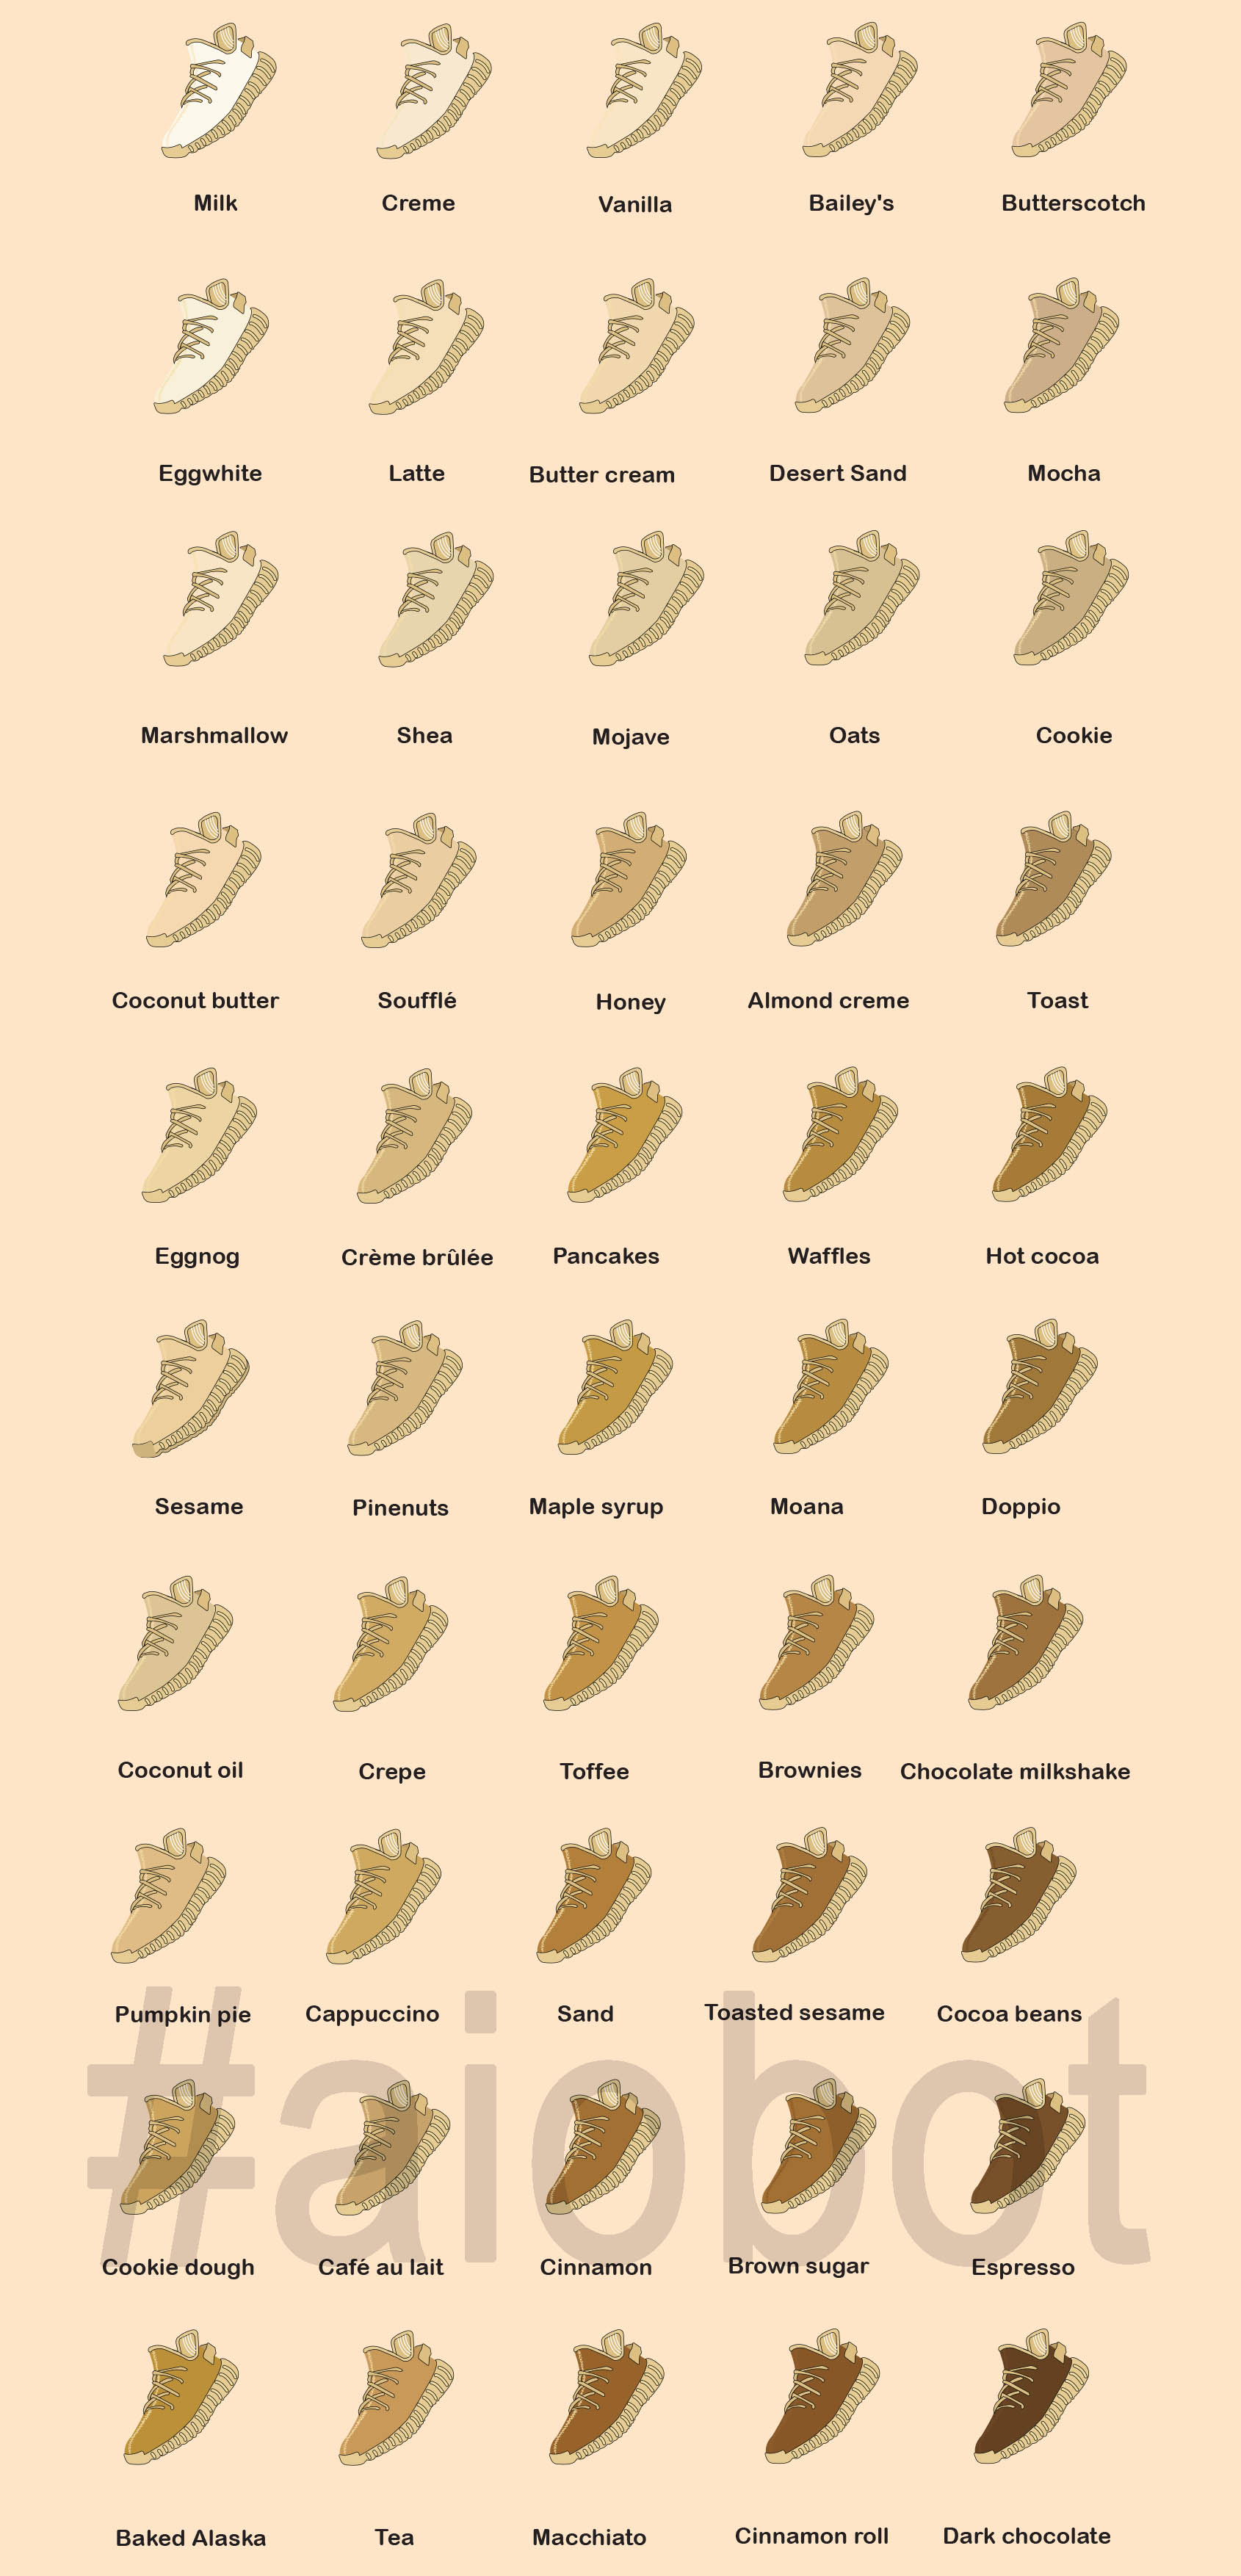 50 shades of the Yeezy Boost 350 V2 Butter